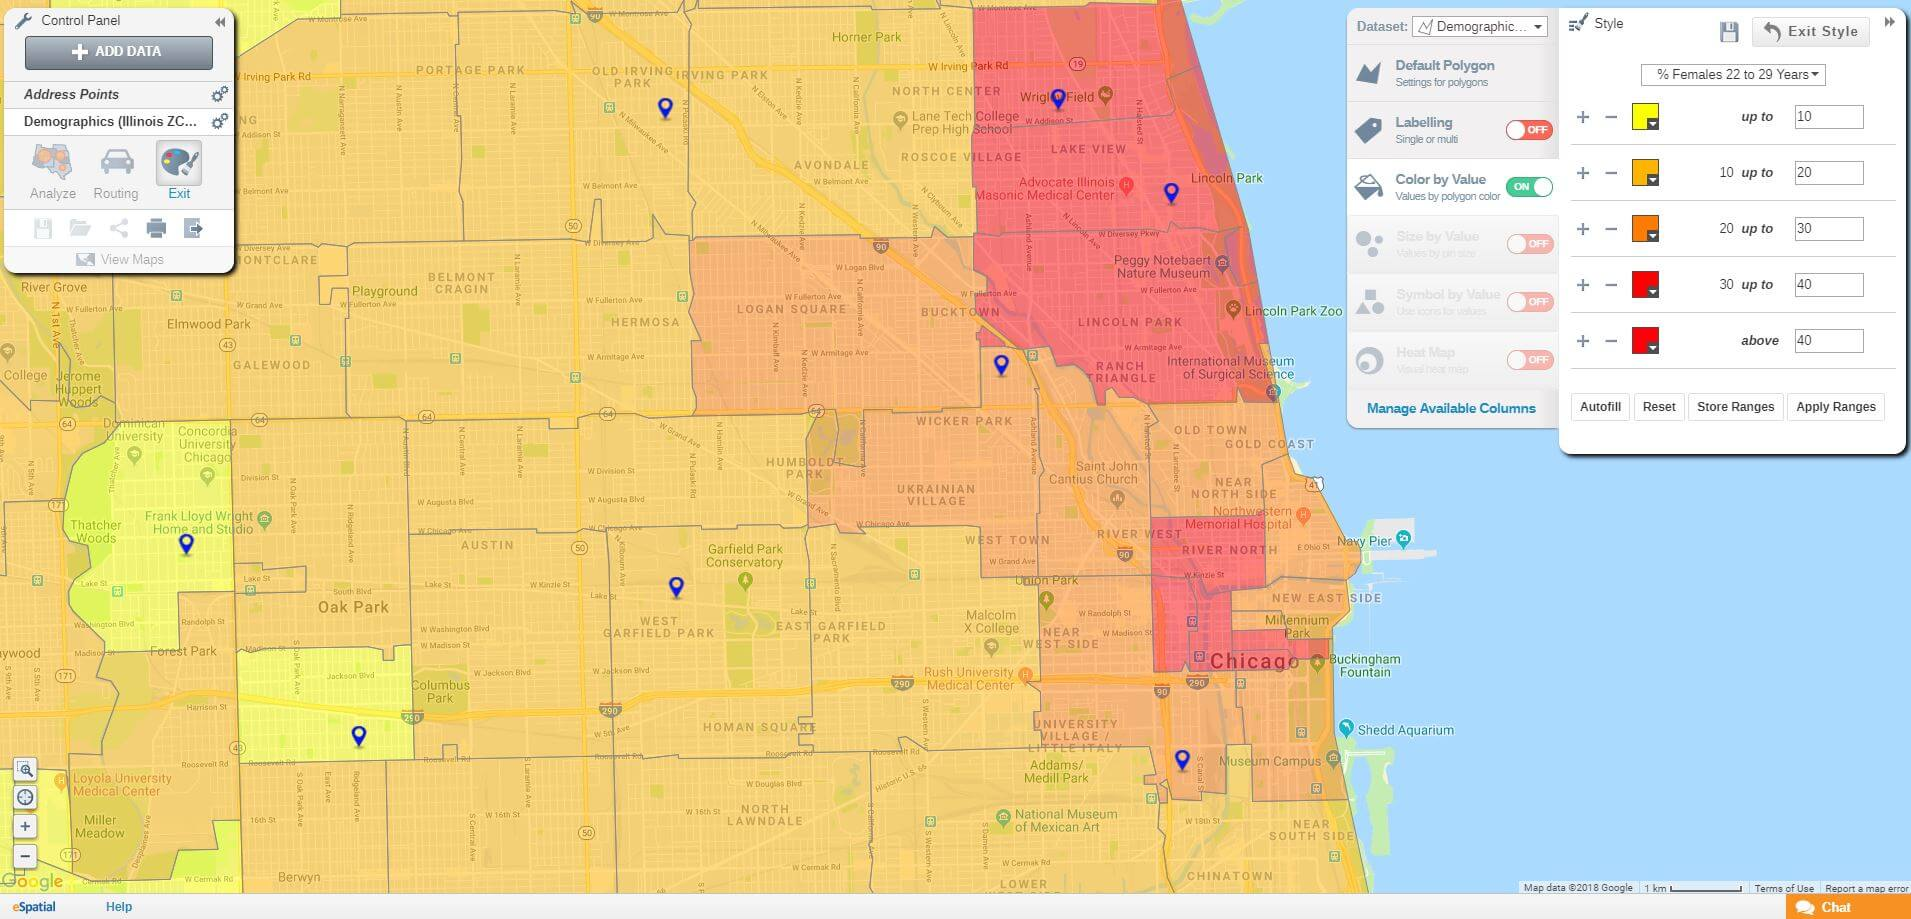 Heat Map on Demographic Data for Retail Stores